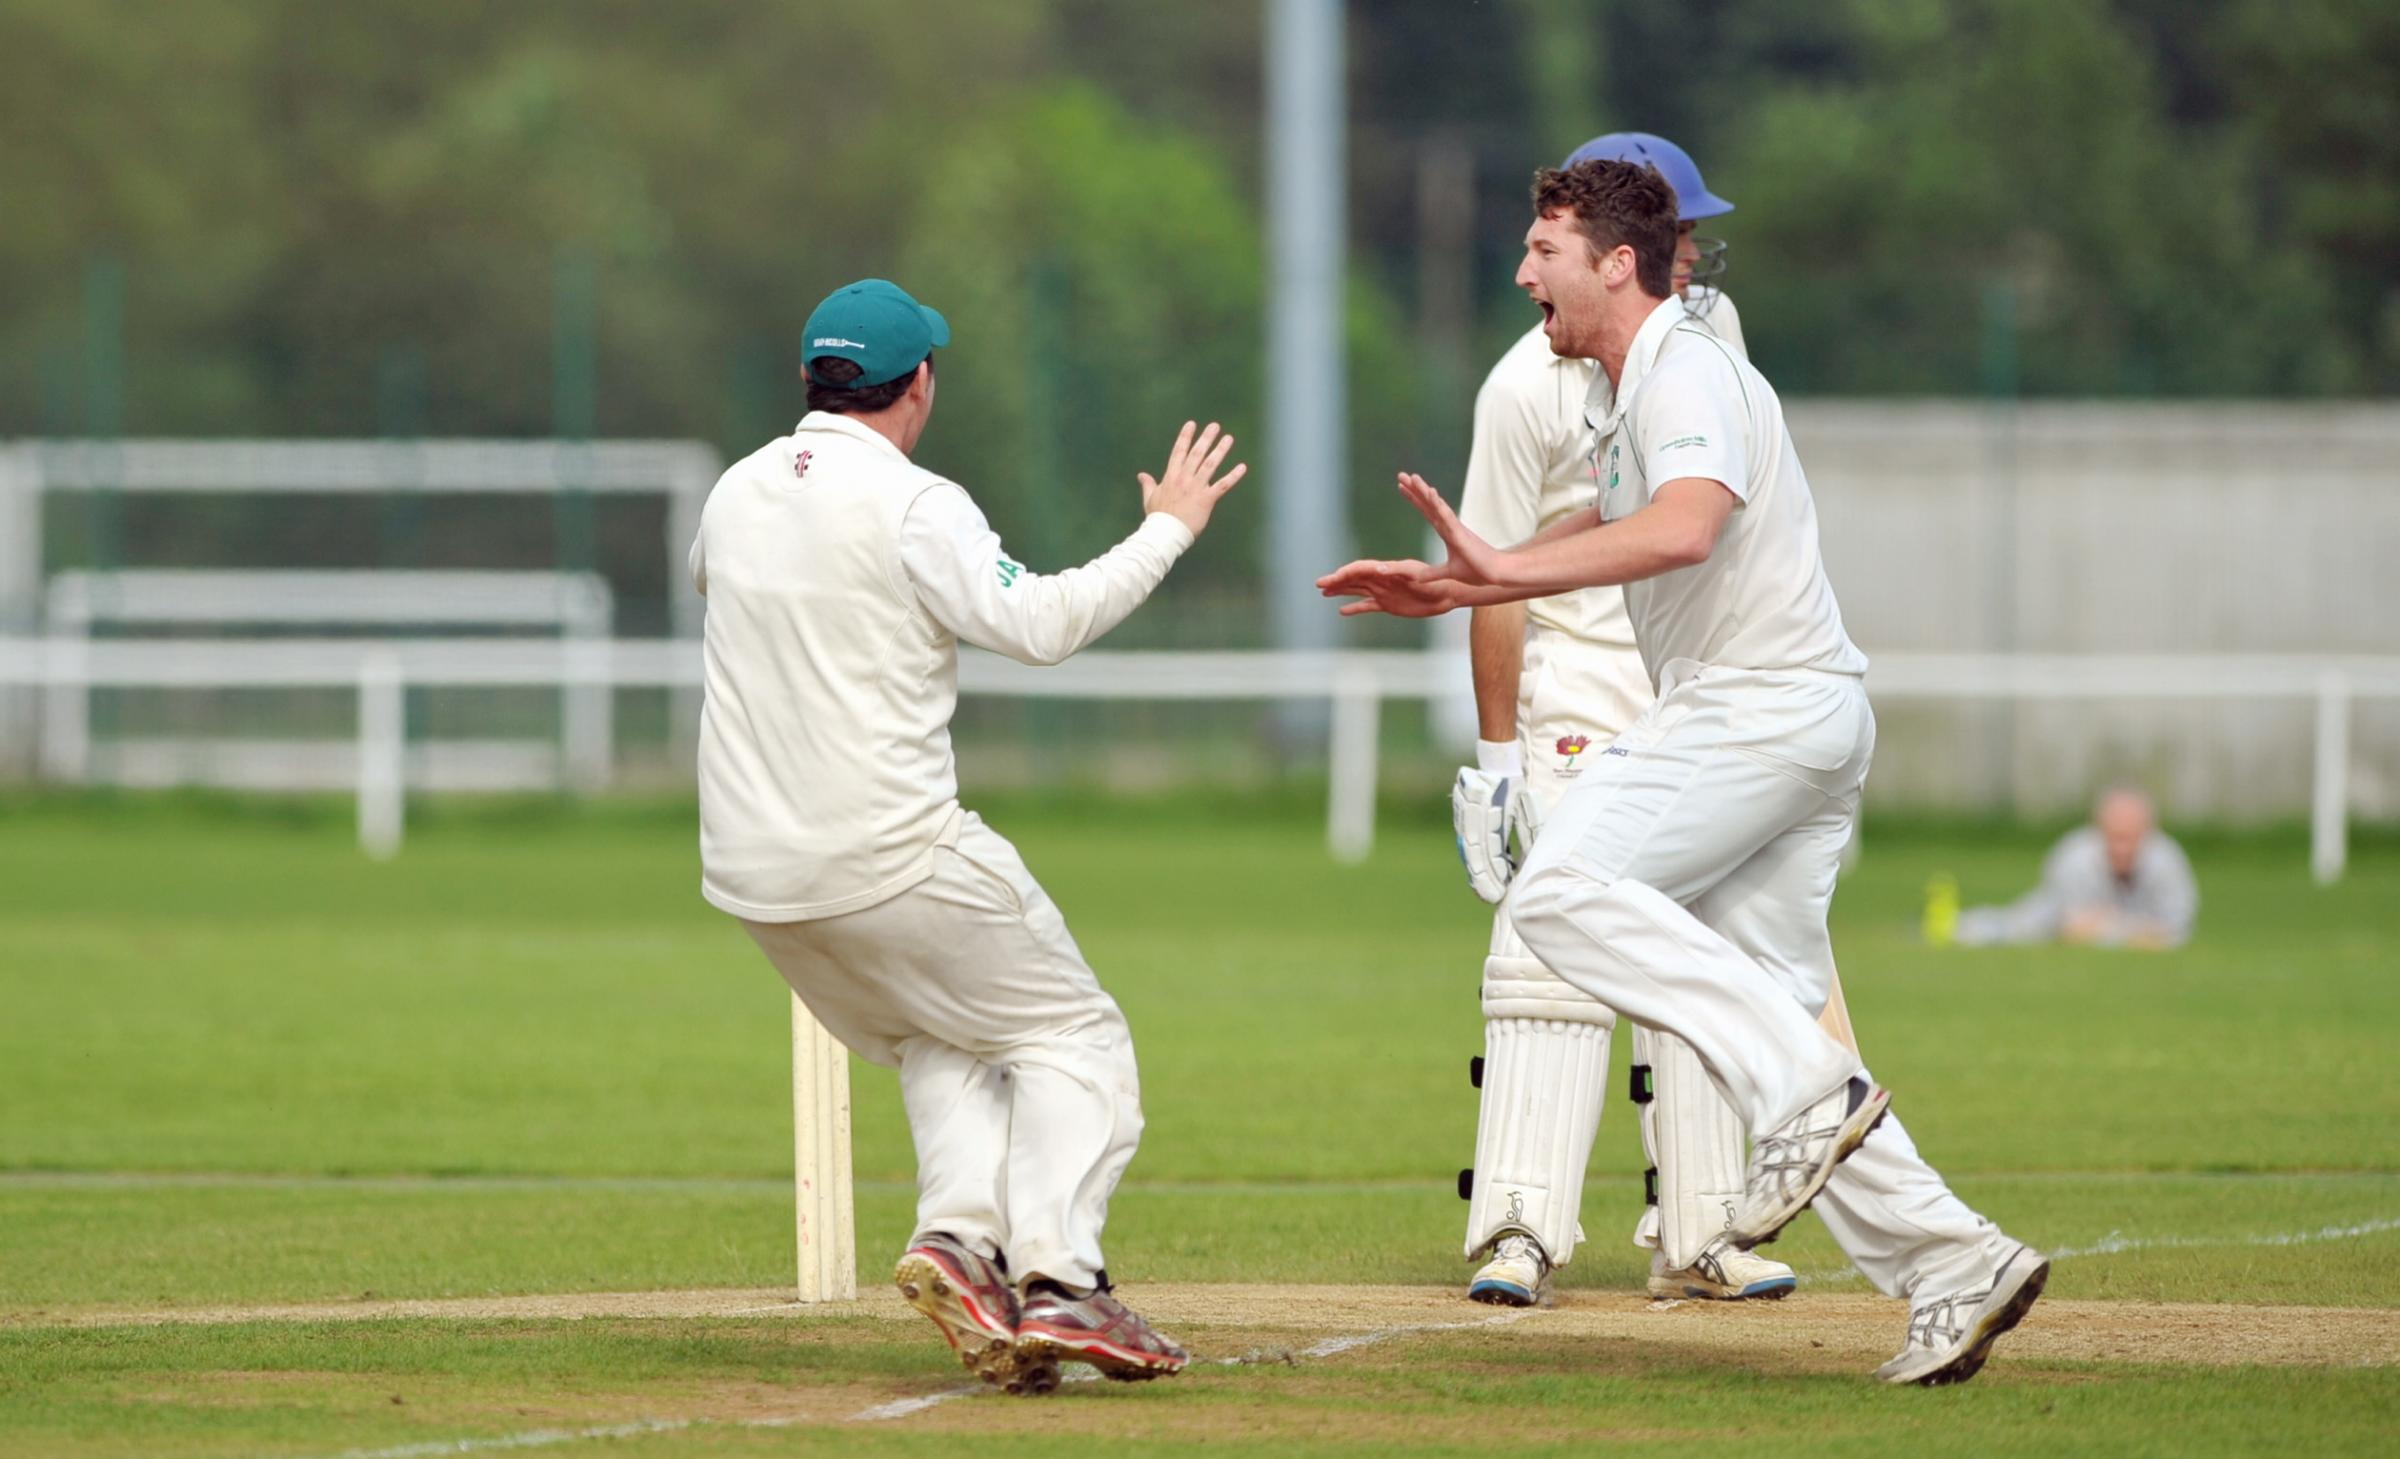 TOP DOGS: James Wilcock celebrates a wicket for Otley – the only unbeaten team in Division One – against Ben Rhydding